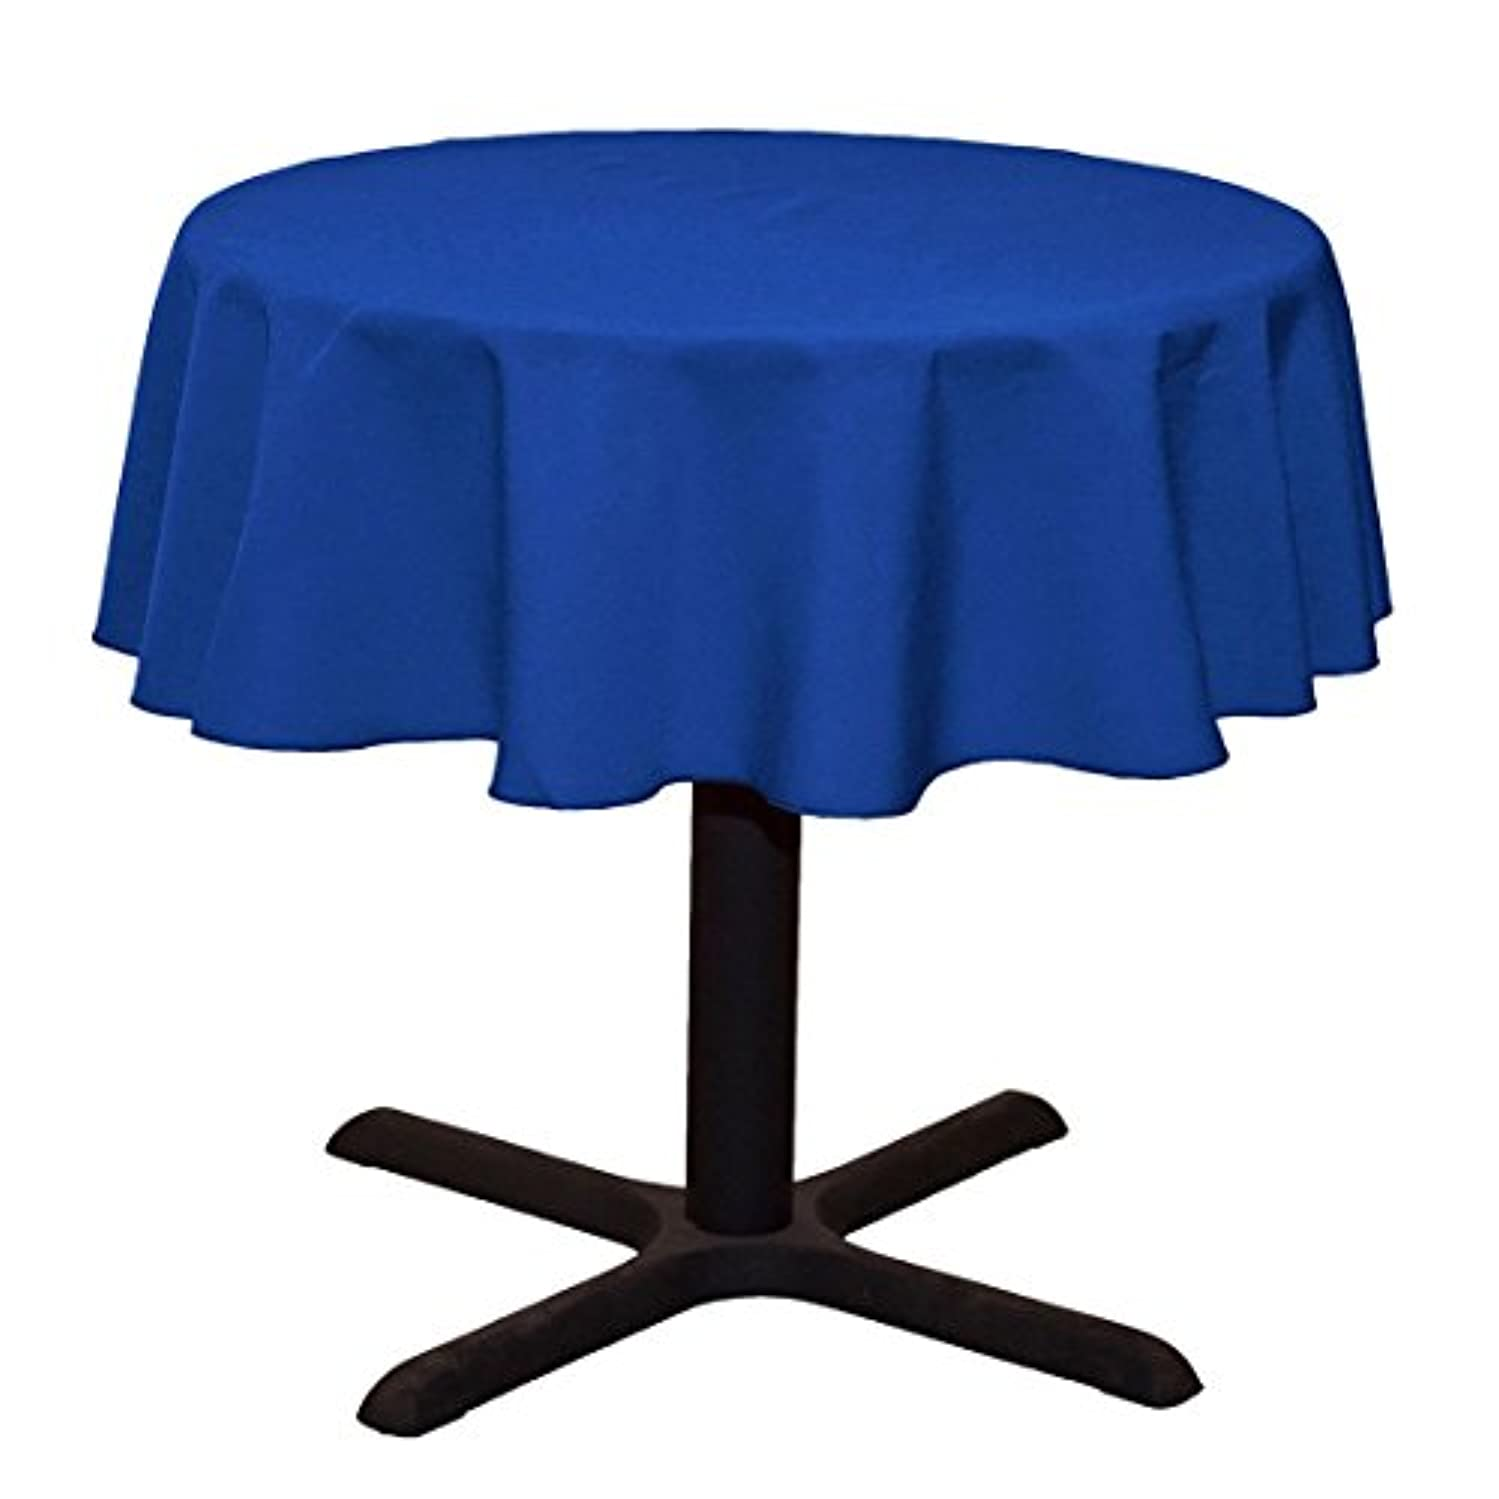 LinenTablecloth Round Cotton-feel Tablecloth, 51-Inch, Royal Blue